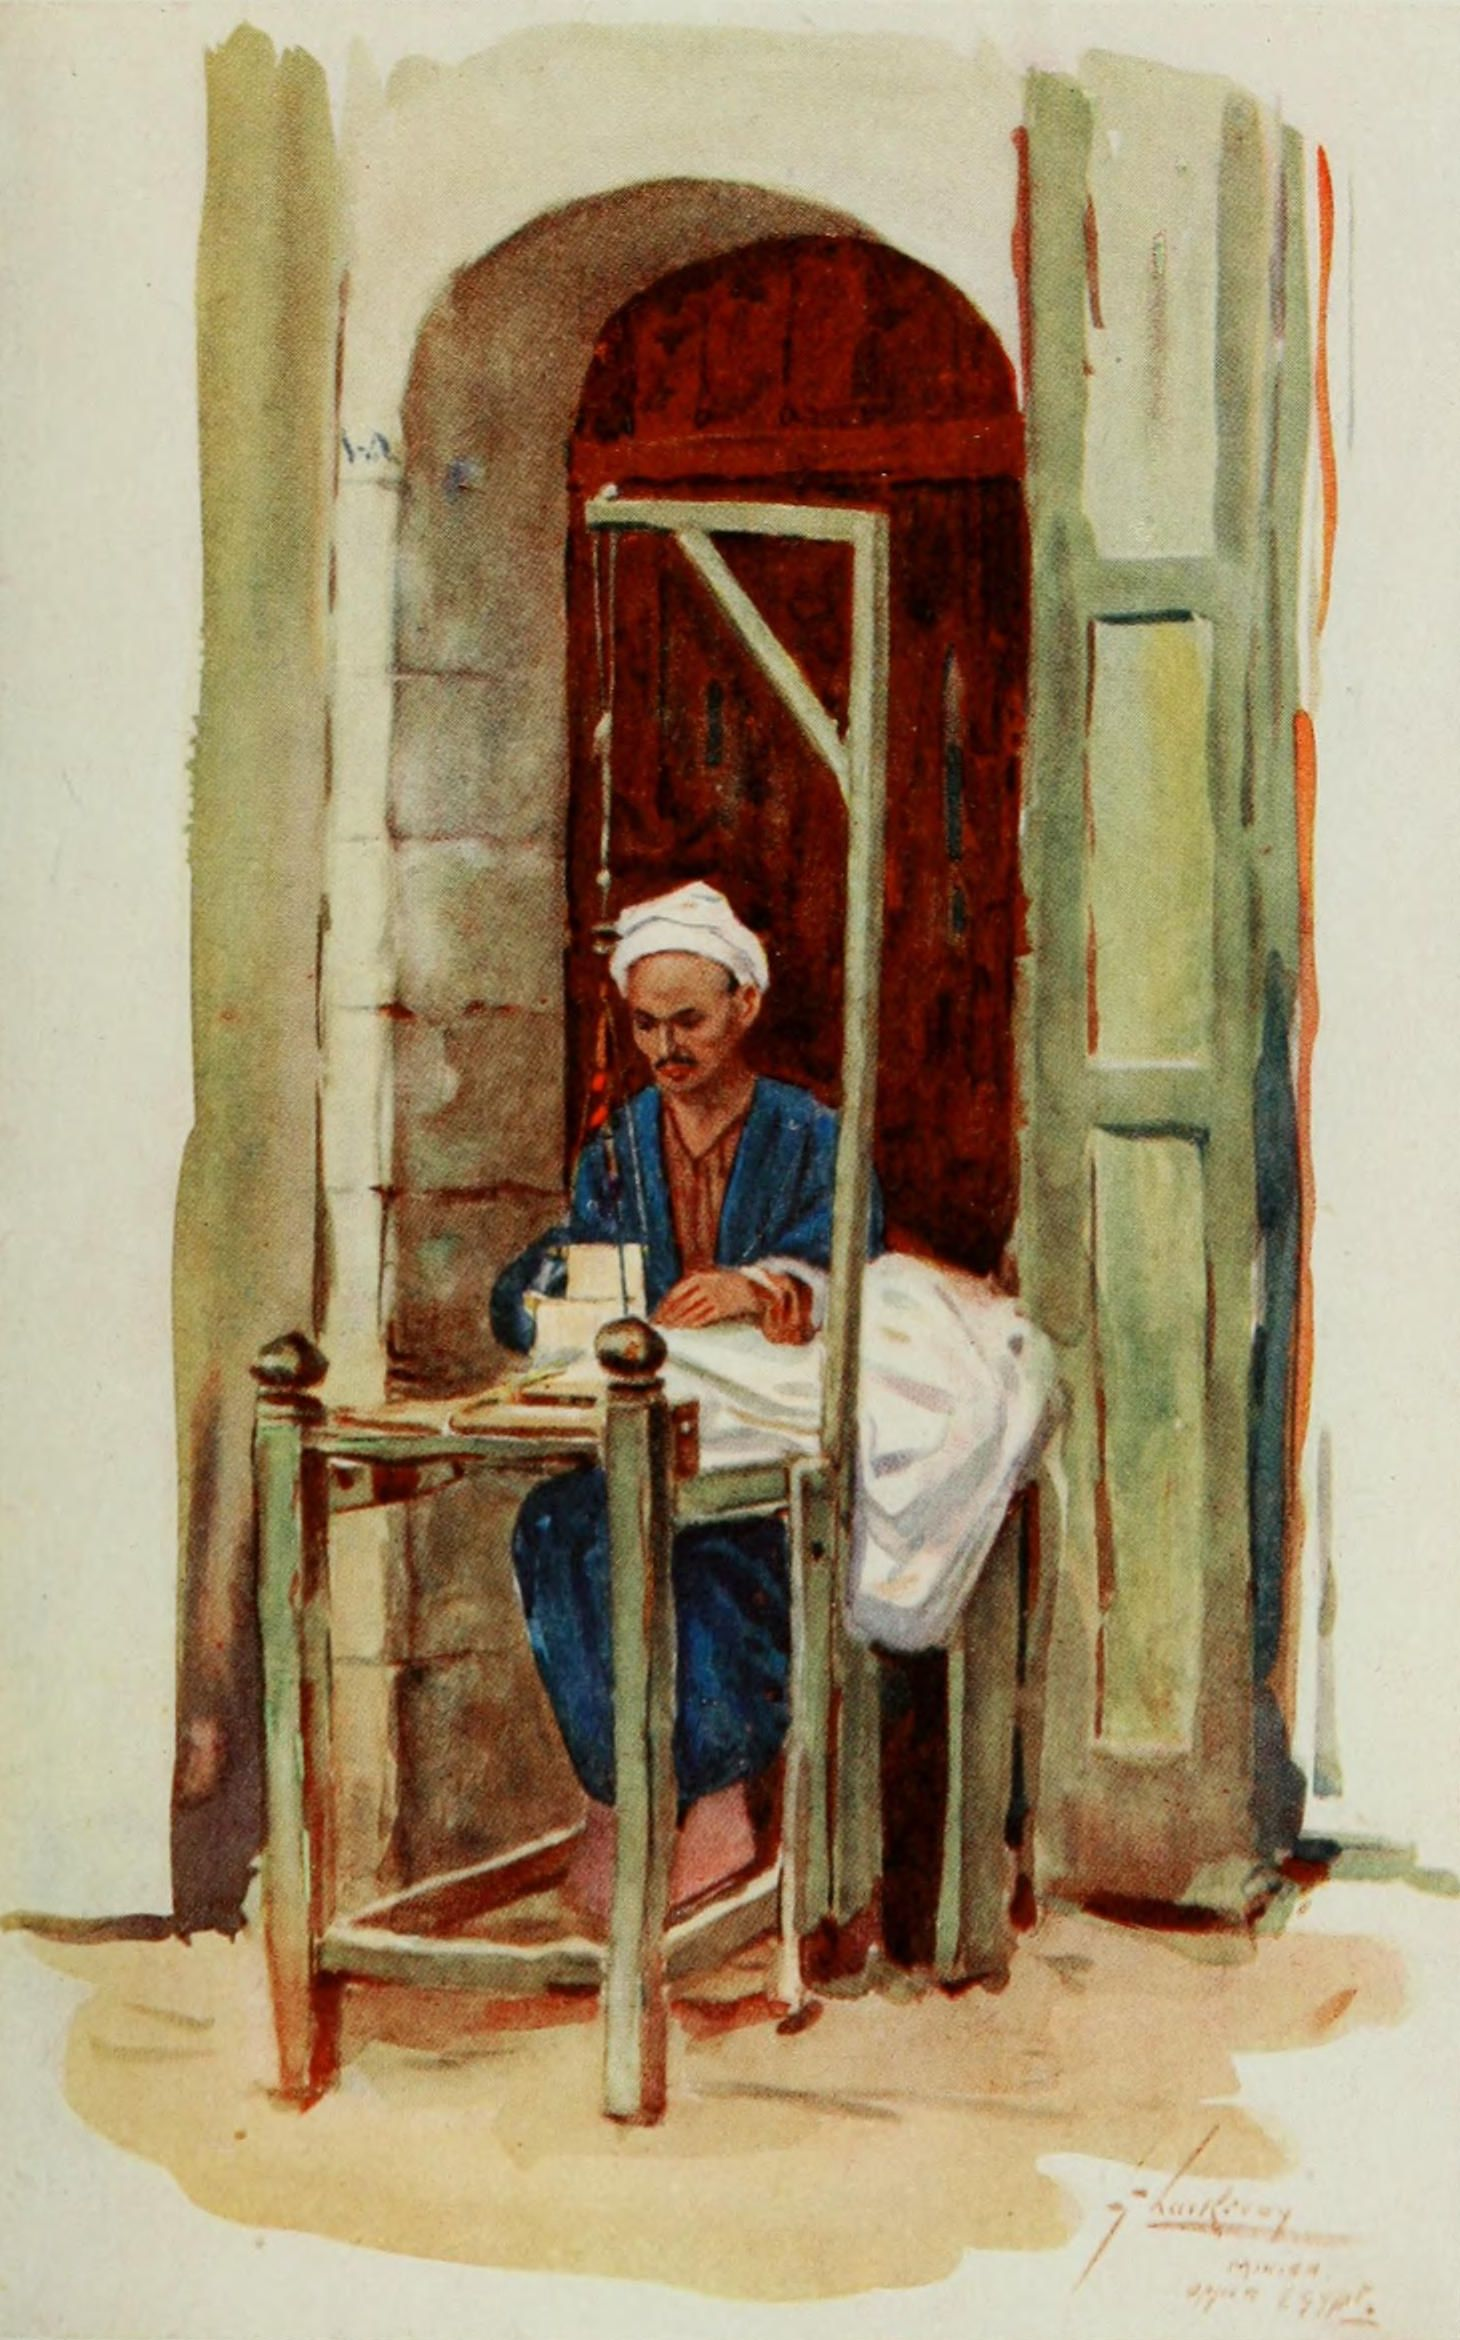 Thackeray, Lance (1869-1916) - The People of Egypt 1916, Spinner or weaver. #nile, #egypt, #africa